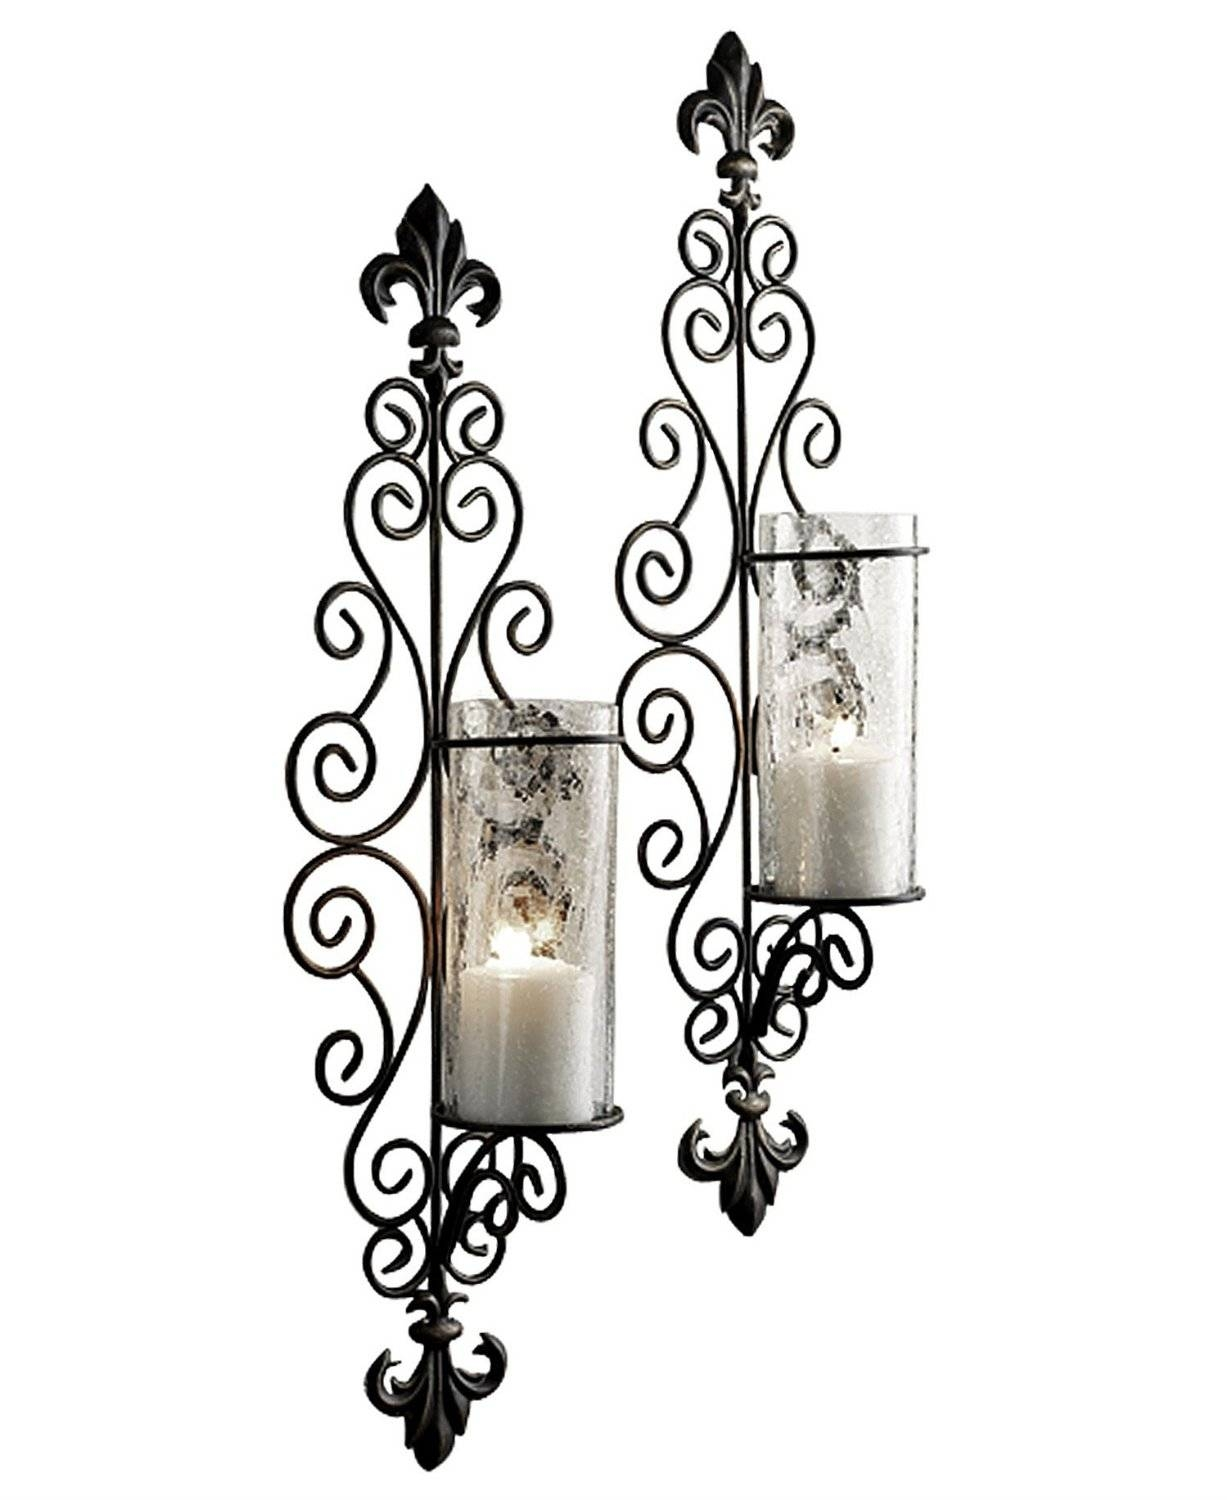 Iron Scroll Wall Decor : Iron Scroll Wall Decor Cafe – Home Decor Regarding 2018 Metal Wall Art With Candle Holders (View 11 of 20)